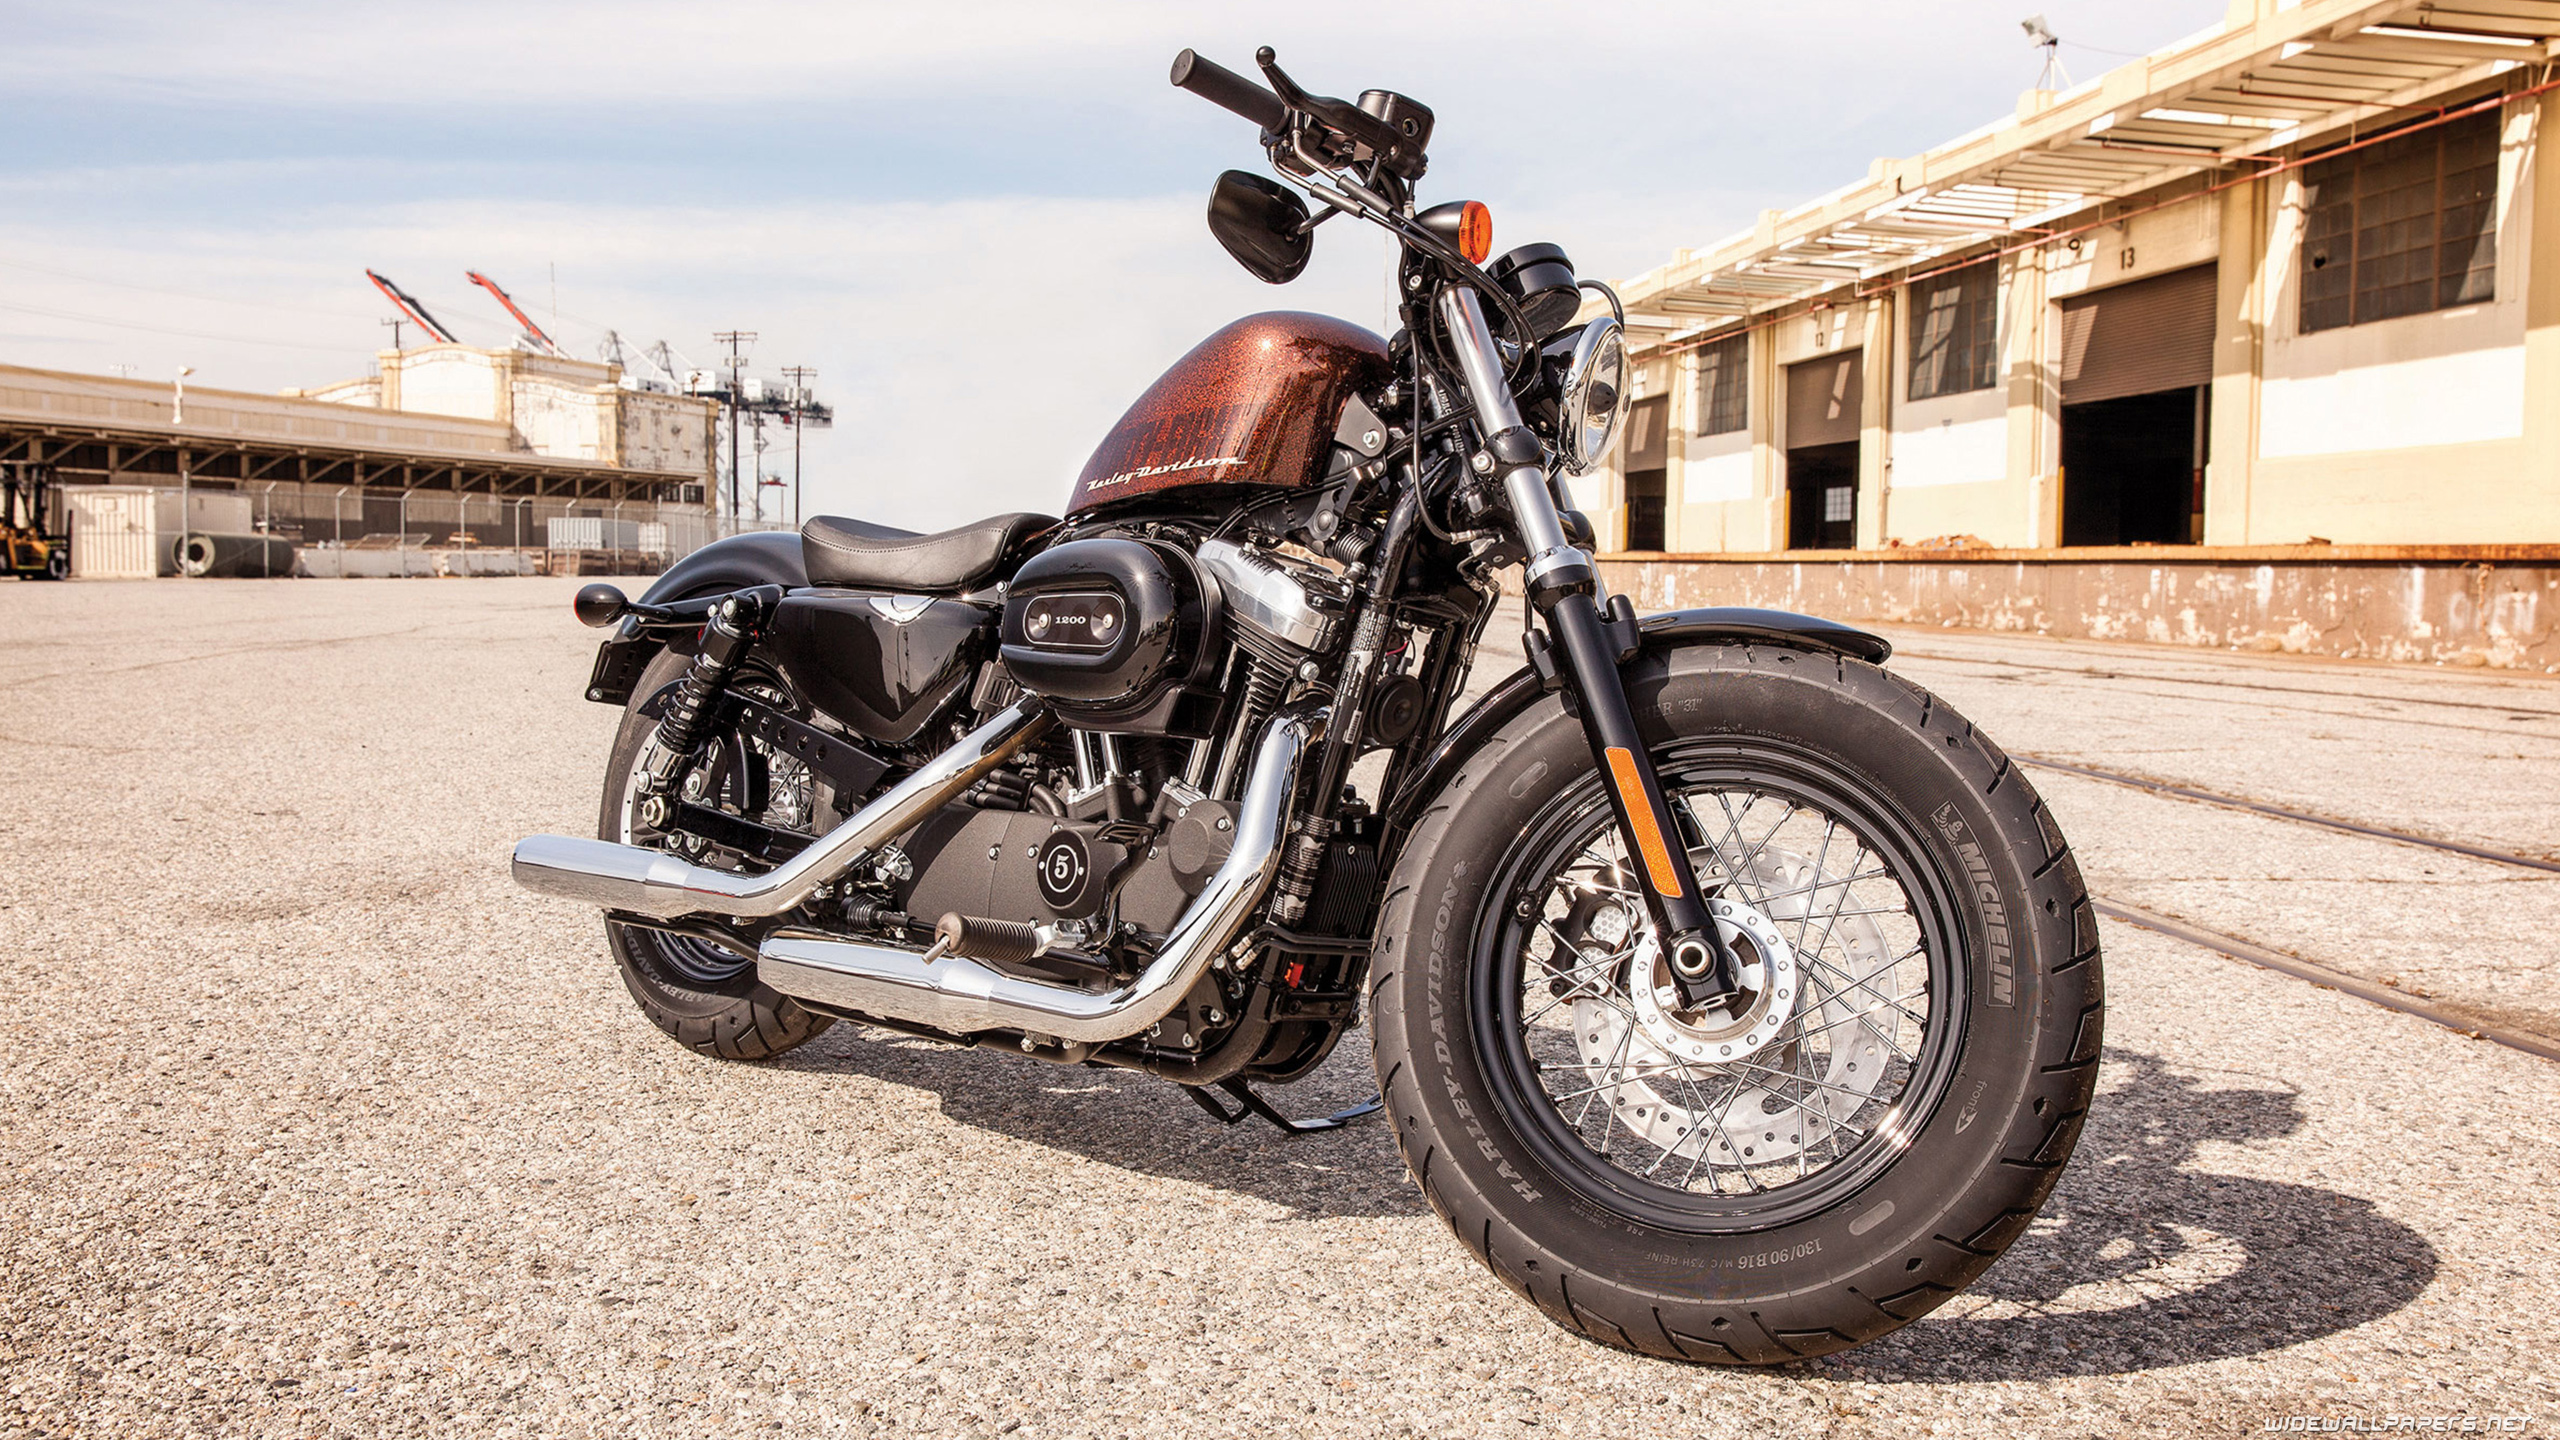 Old Harley Davidson Sportster Wallpapers Free Pictures On Greepx